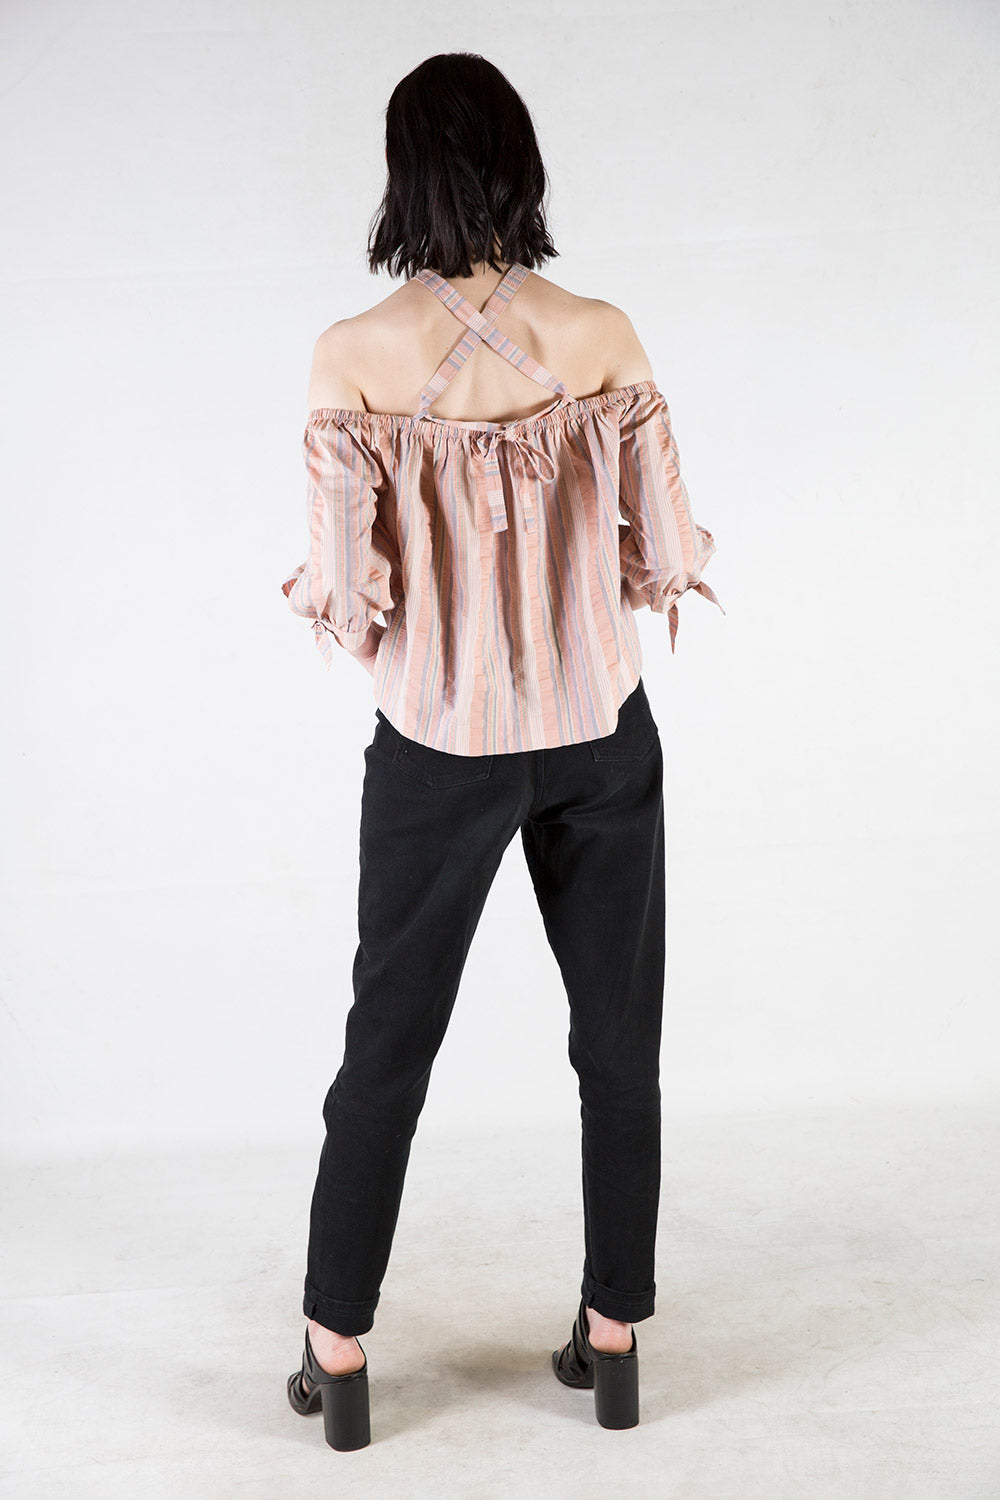 George Off The Shoulder Top | Young + Resolute | Annah Stretton